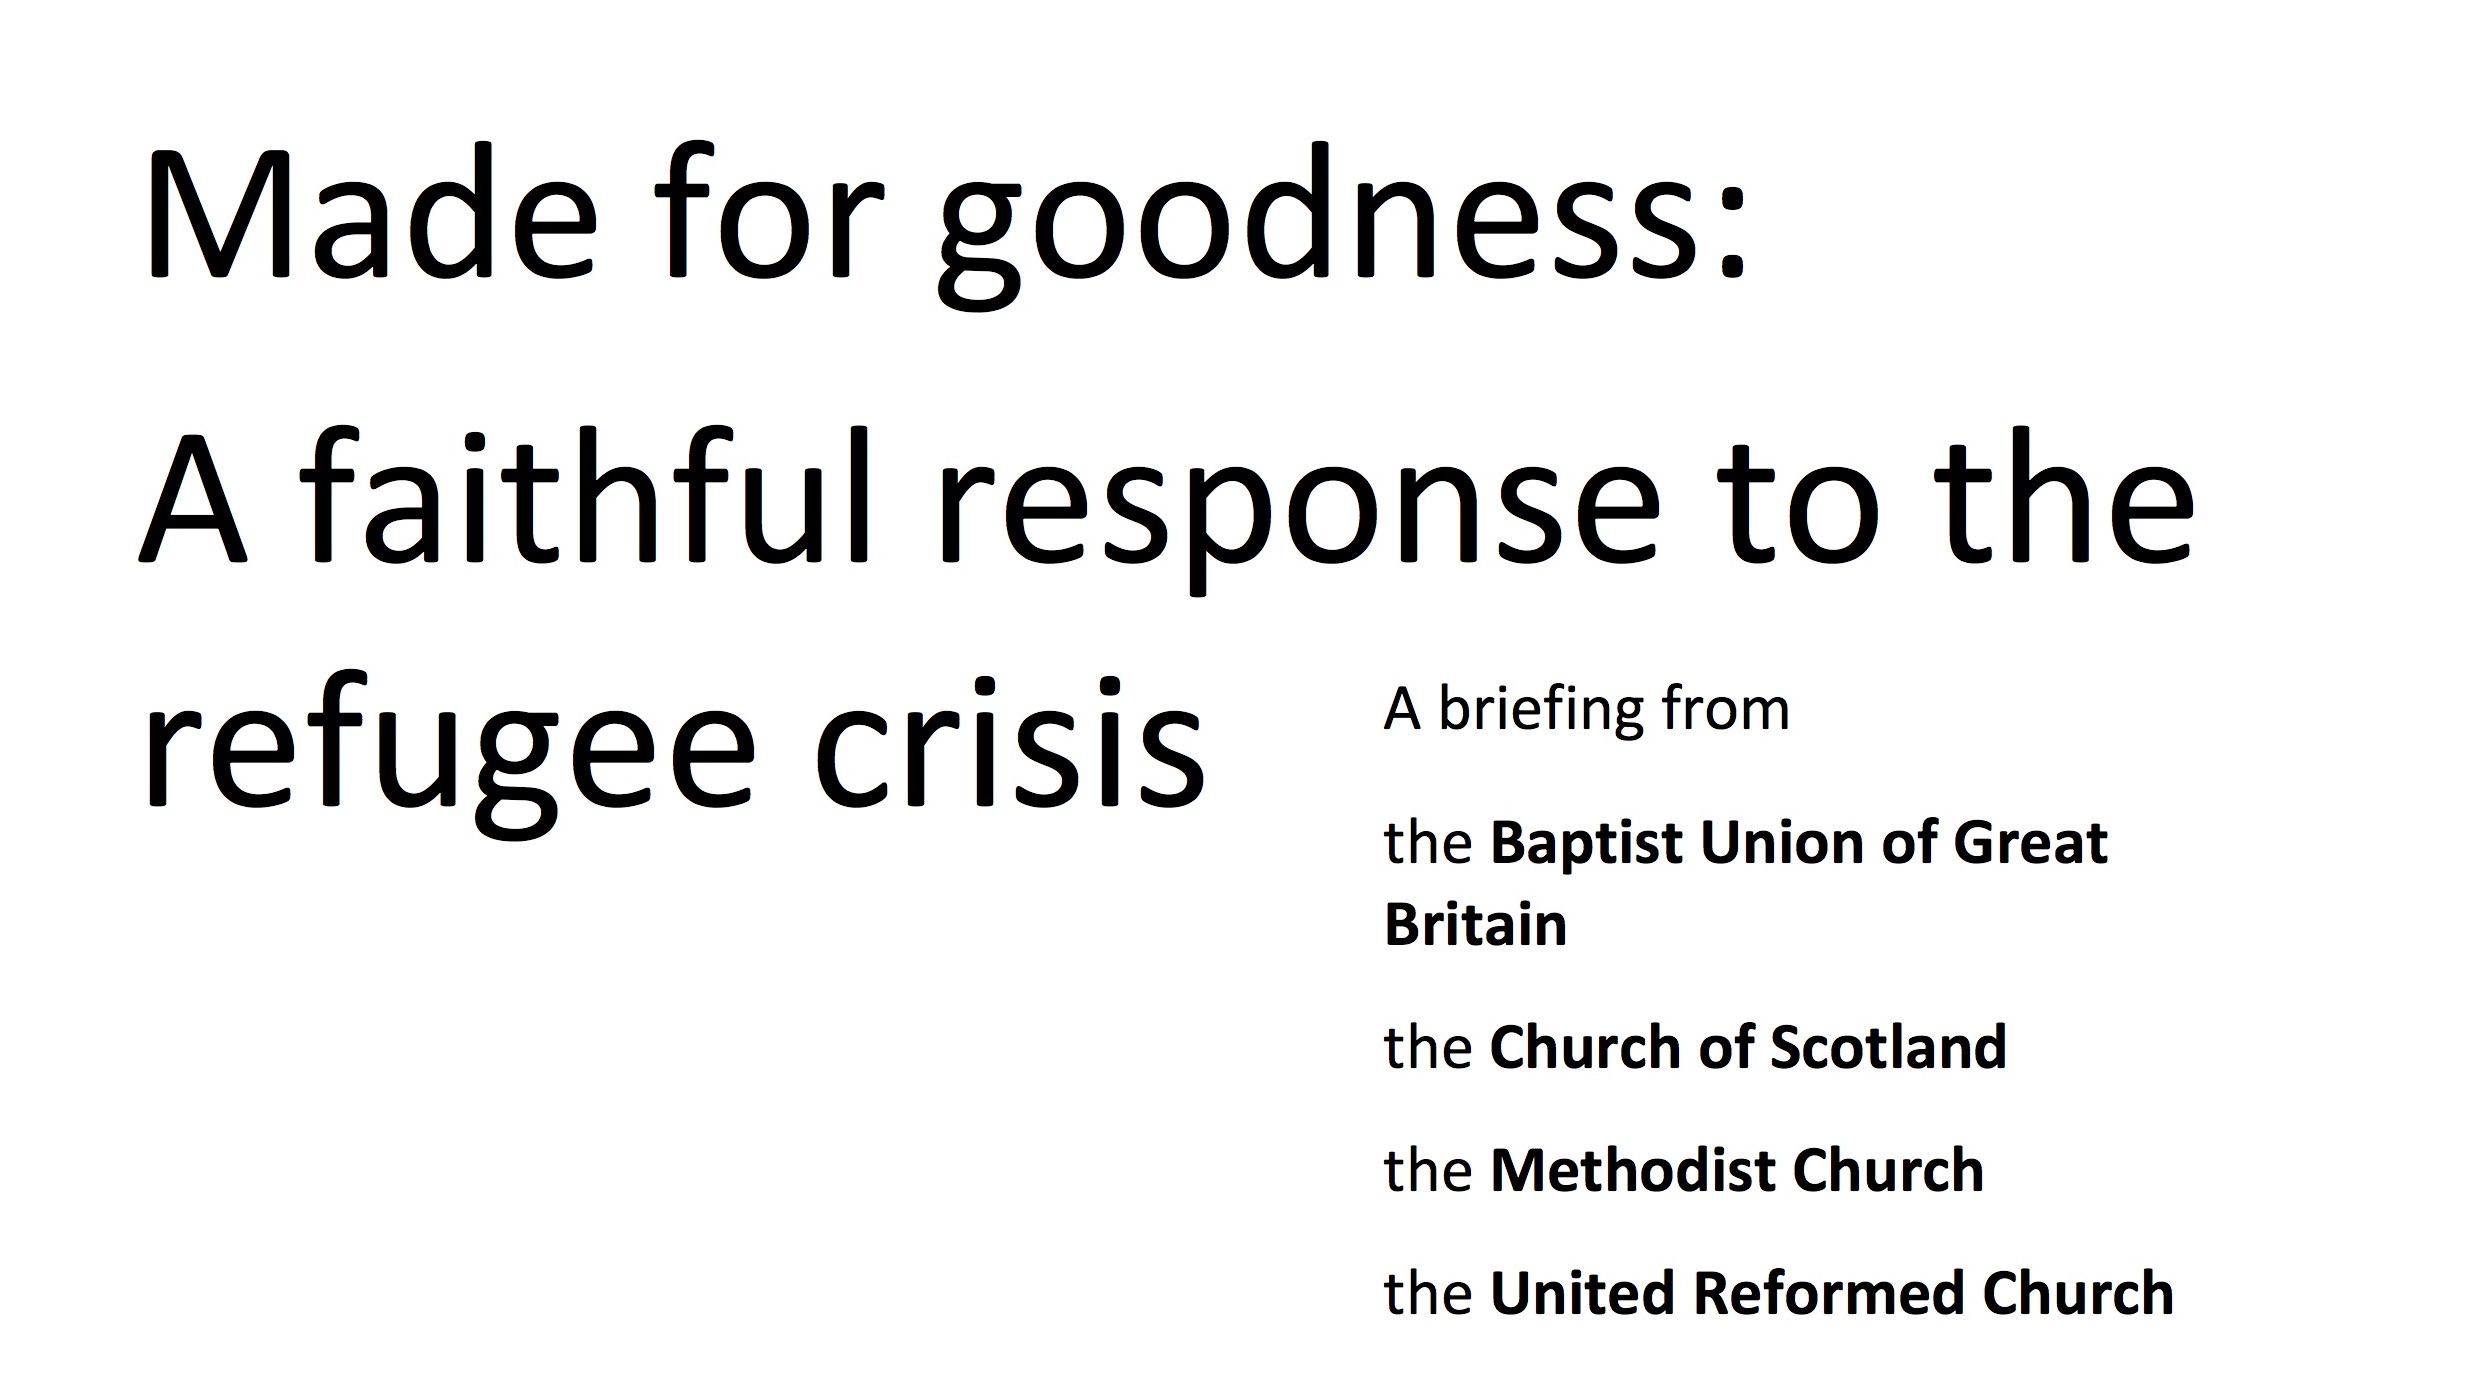 Made for Goodness: a faithful response to the refugee crisis